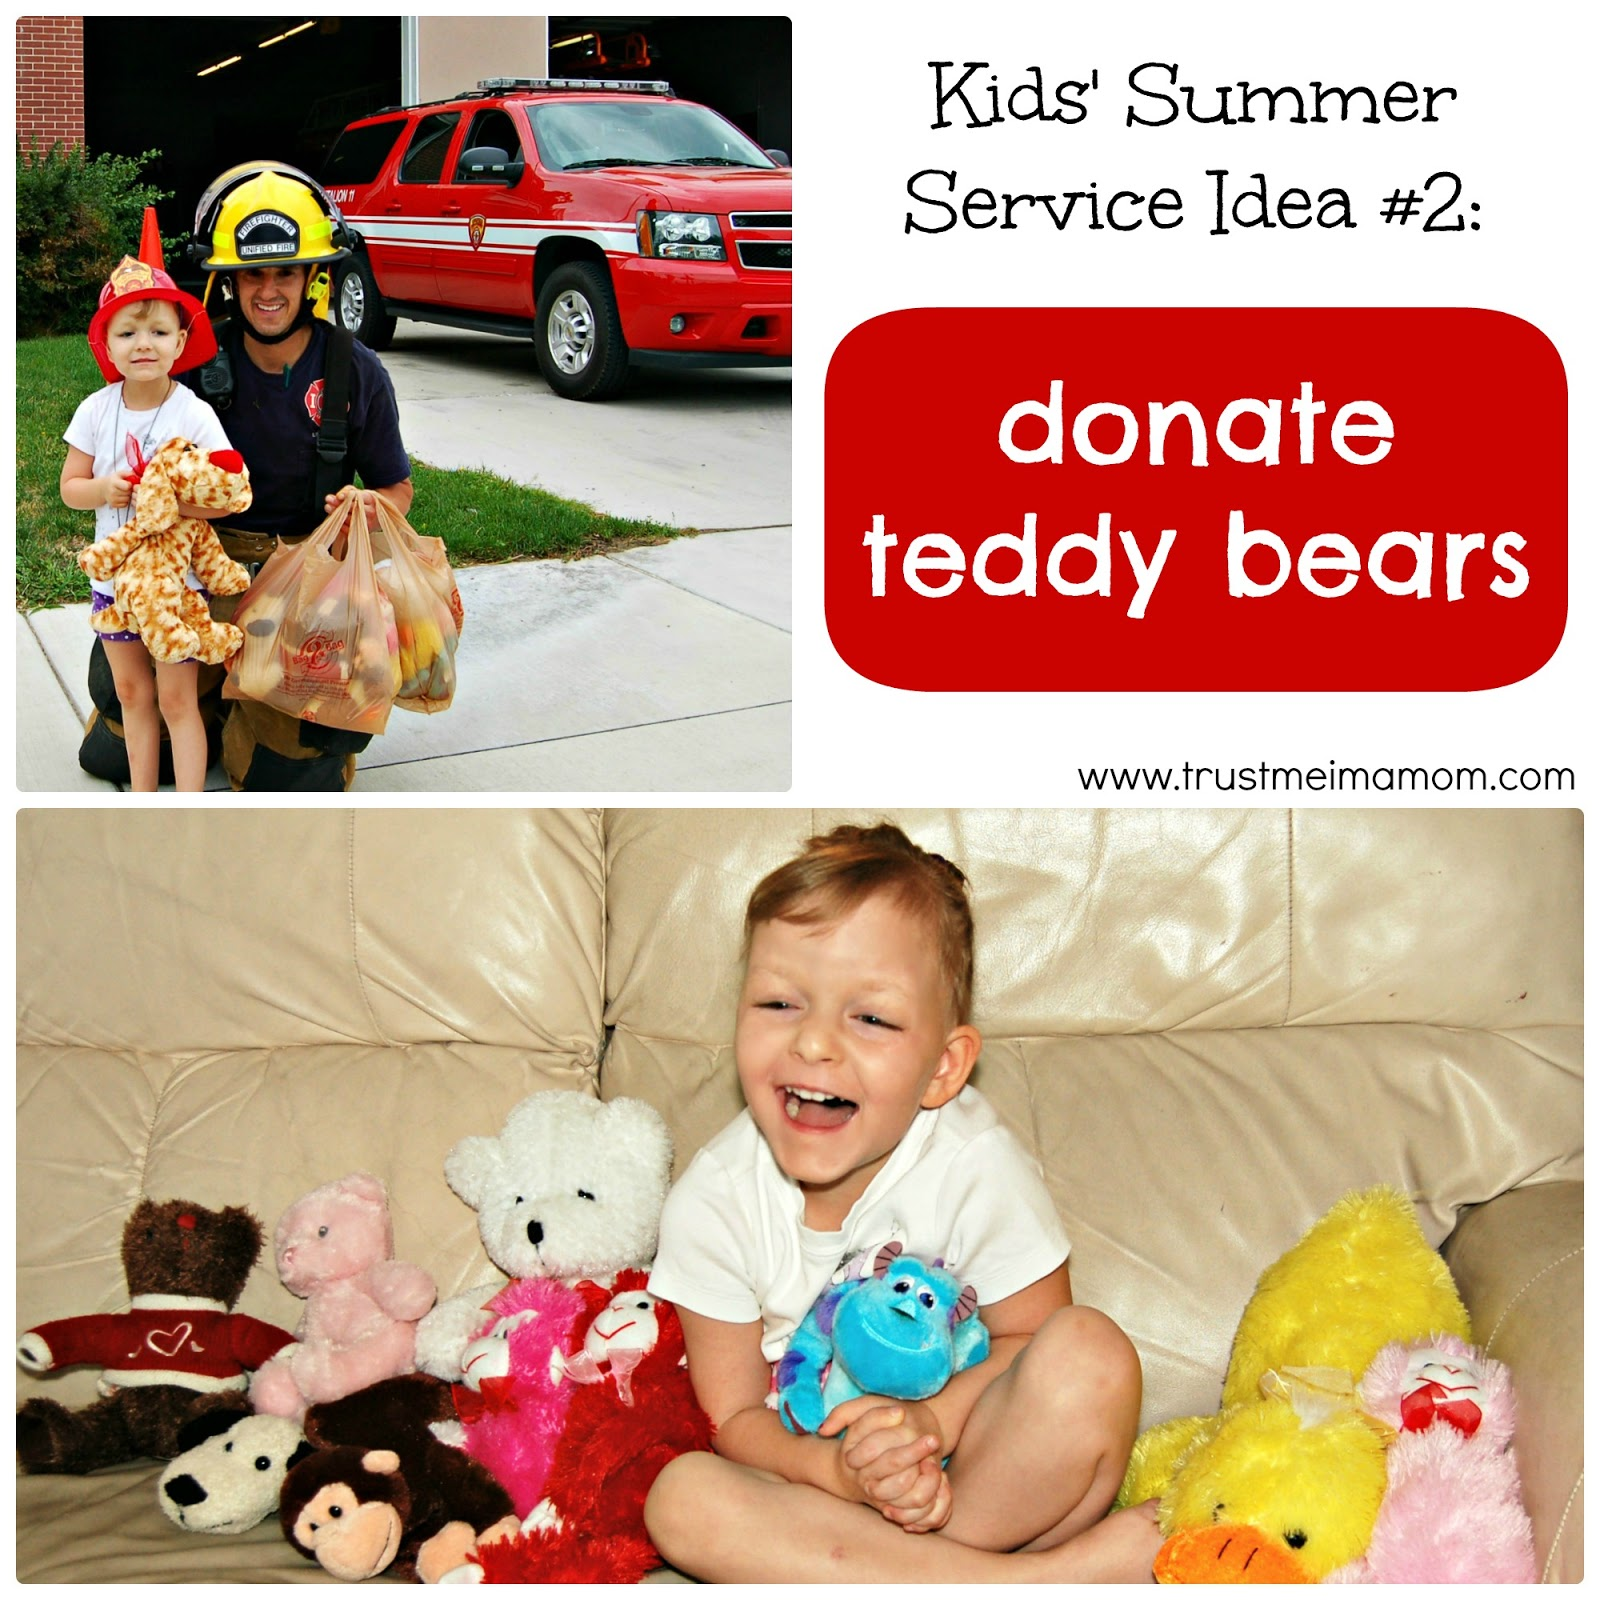 Fun Ways to Serve with Kids This Summer - Idea #2: Host a Teddy Bear Drive